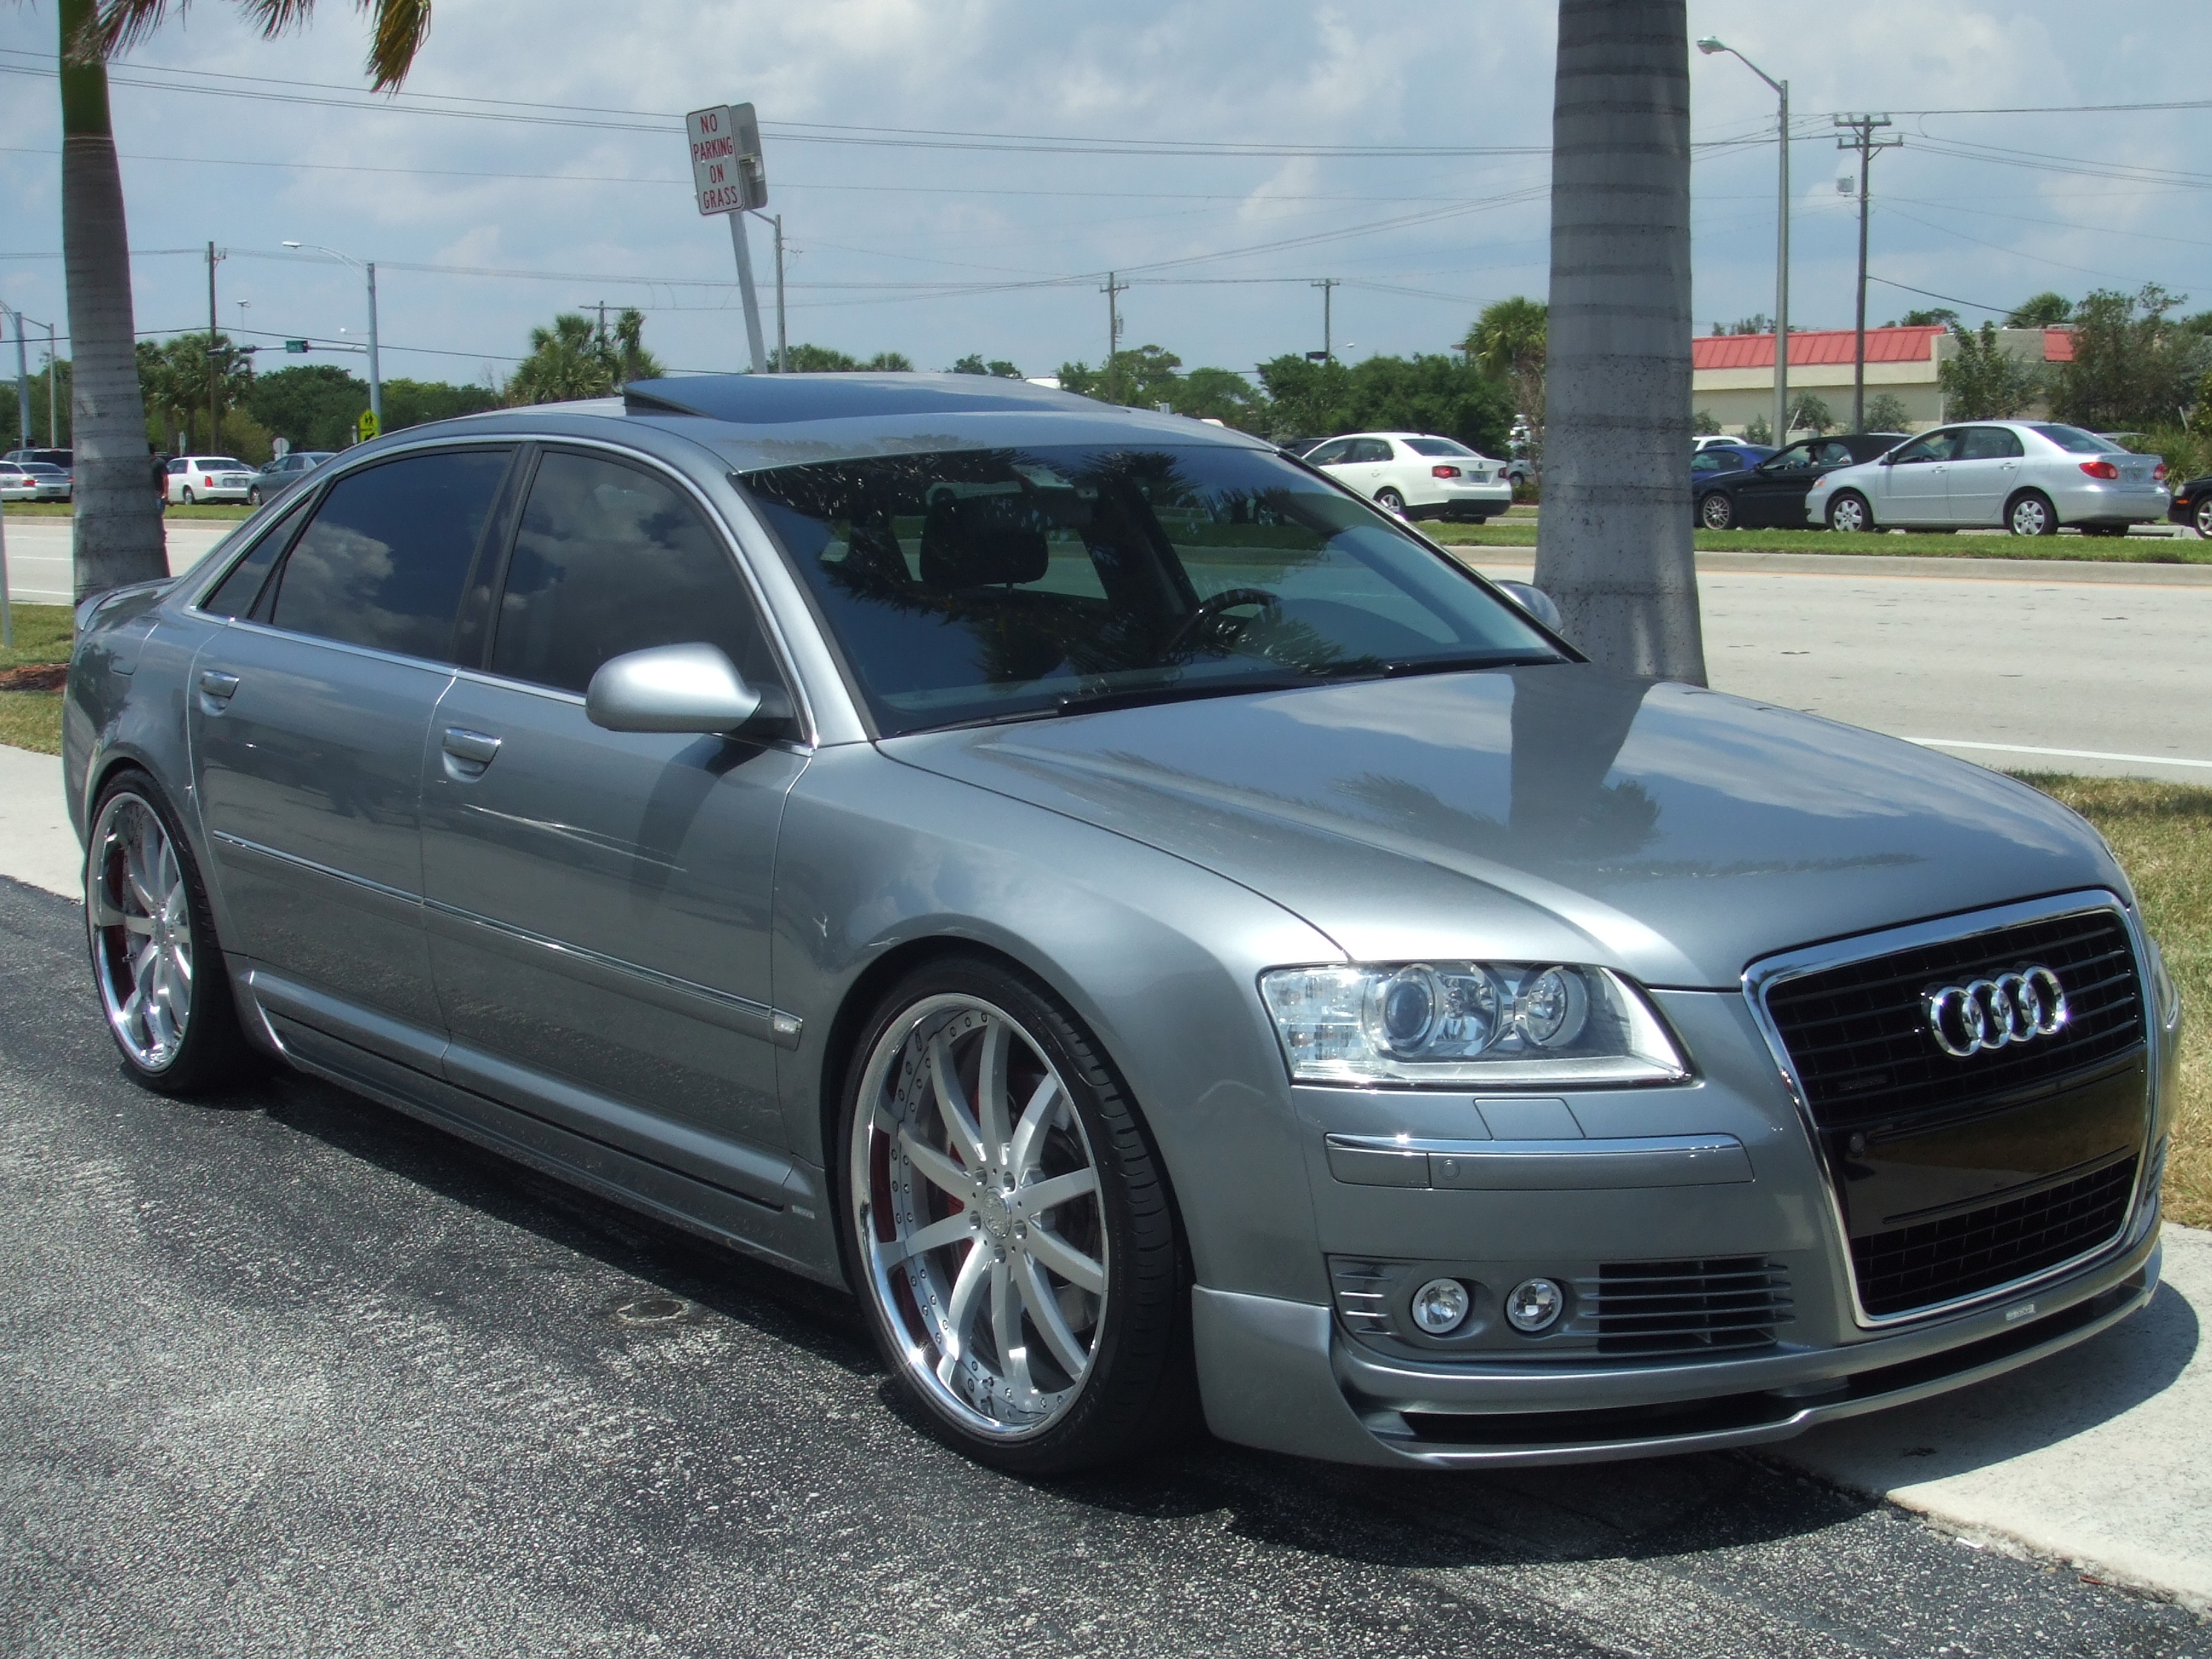 2007 Audi S8 Blue | 200+ Interior and Exterior Images